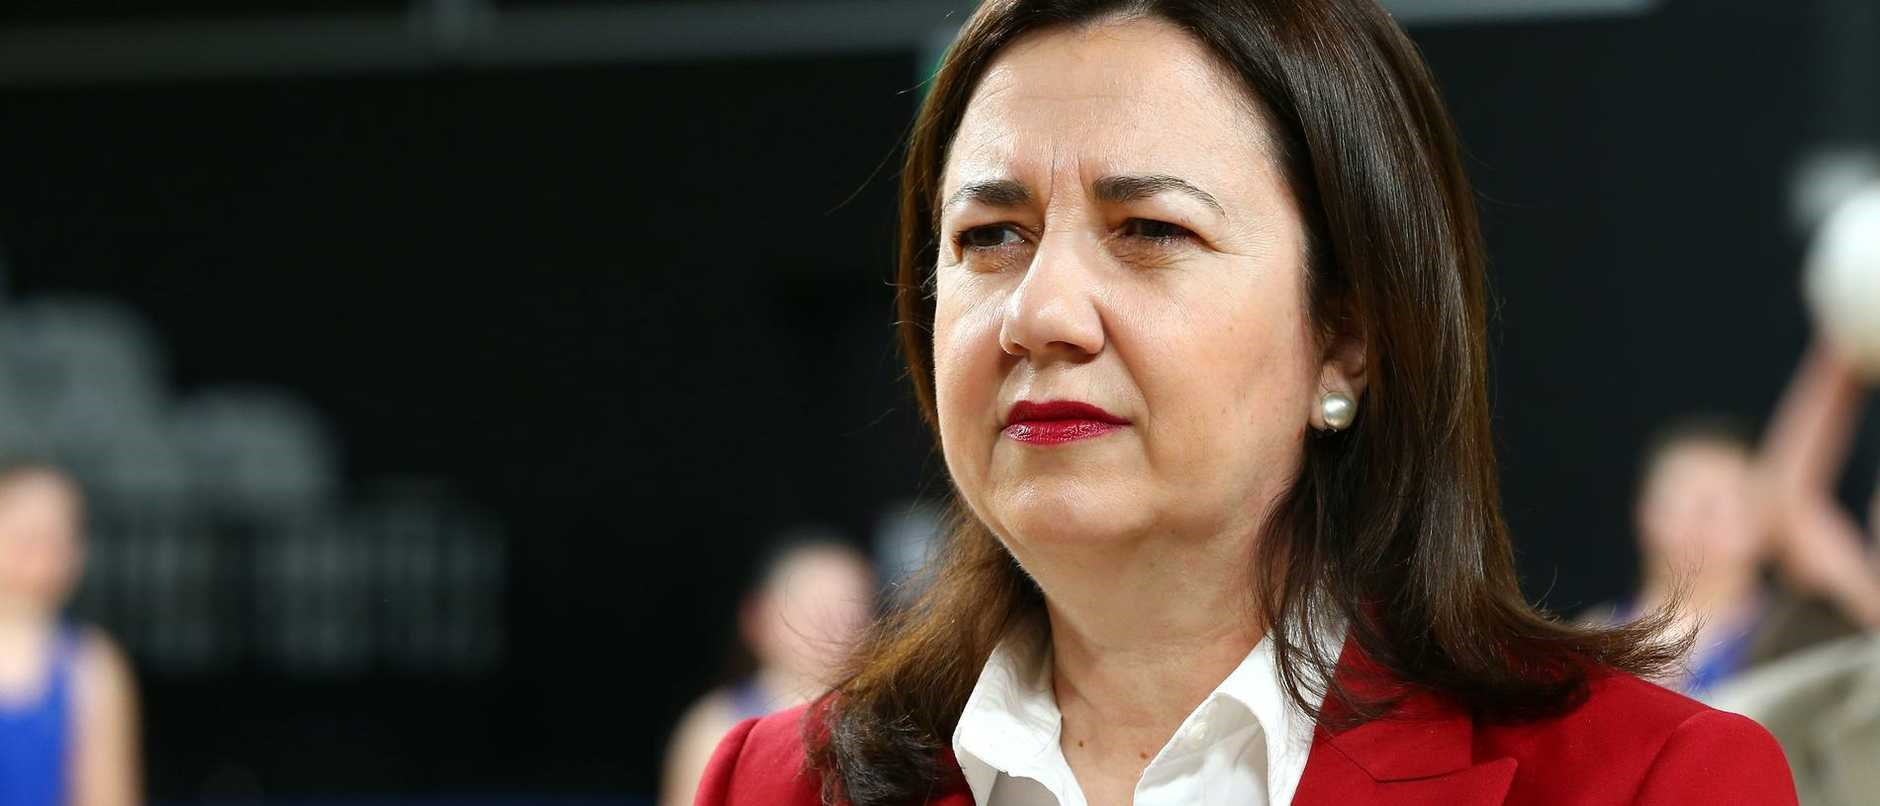 LEADERS OF THE PANDEMIC – QUEENSLAND PREMIER, THE HON ANNASTACIA PALASZCZUK MP